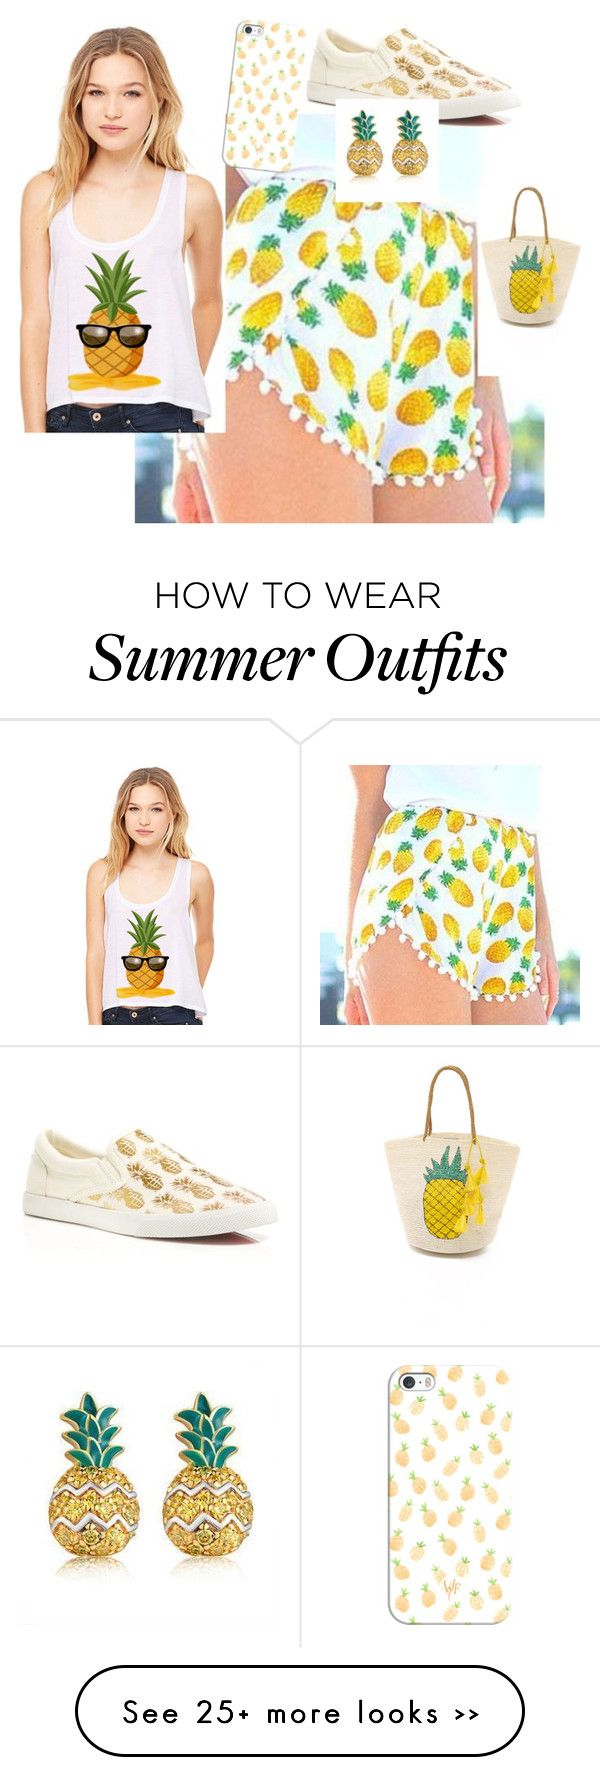 """Pineapple outfit"" by courtneybrown-iv on Polyvore featuring moda, Dream a Dream, Sensi Studio, BucketFeet, MBLife.com e Casetify"